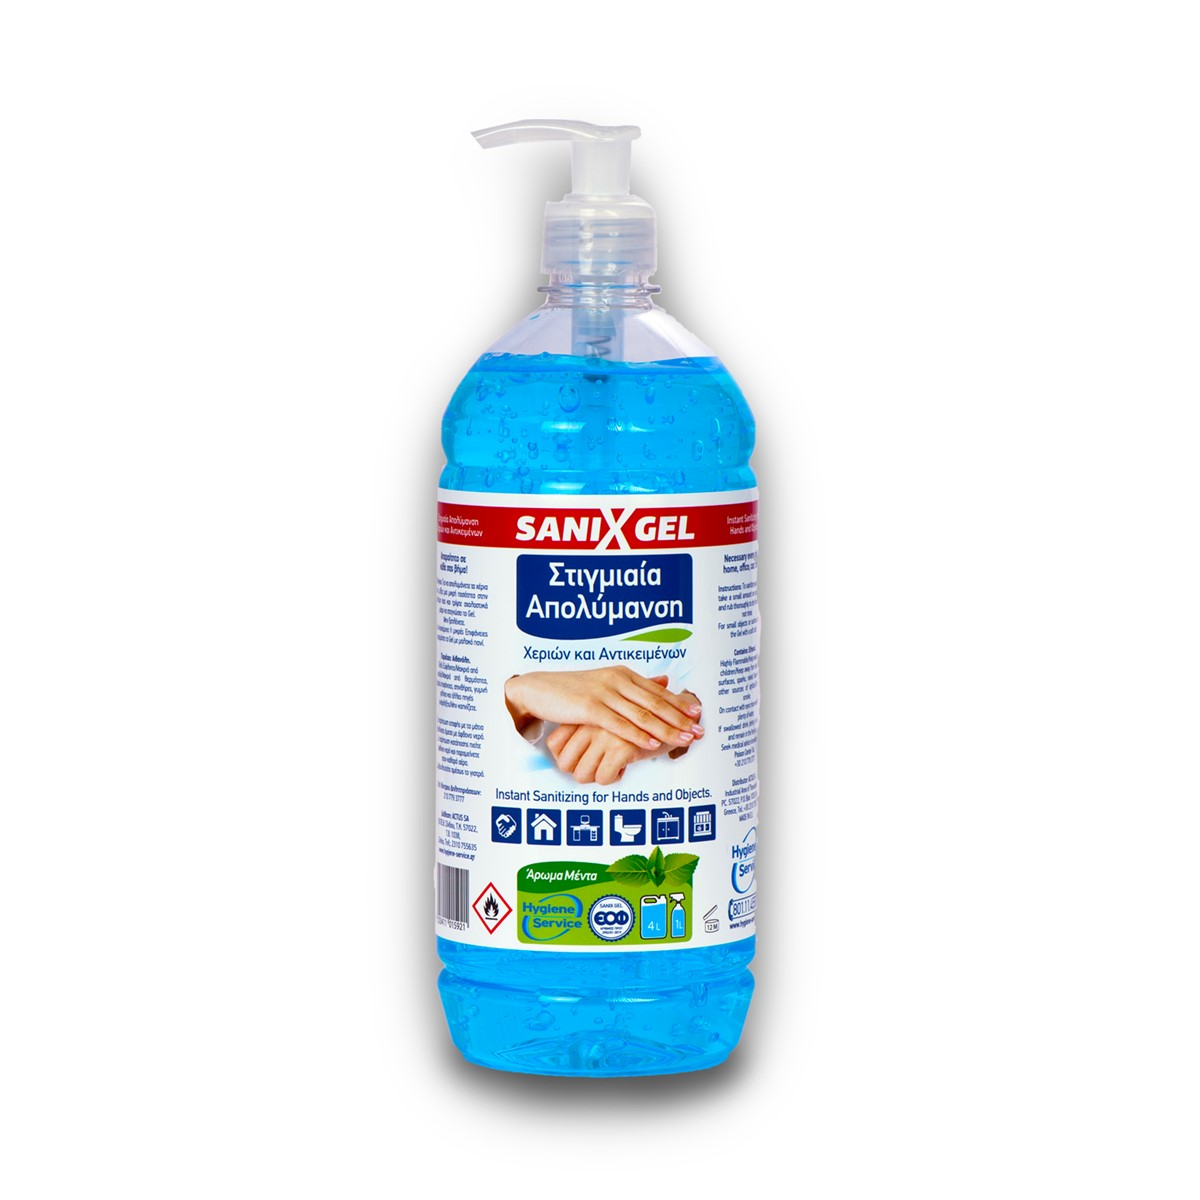 SANIX GEL 1 LT